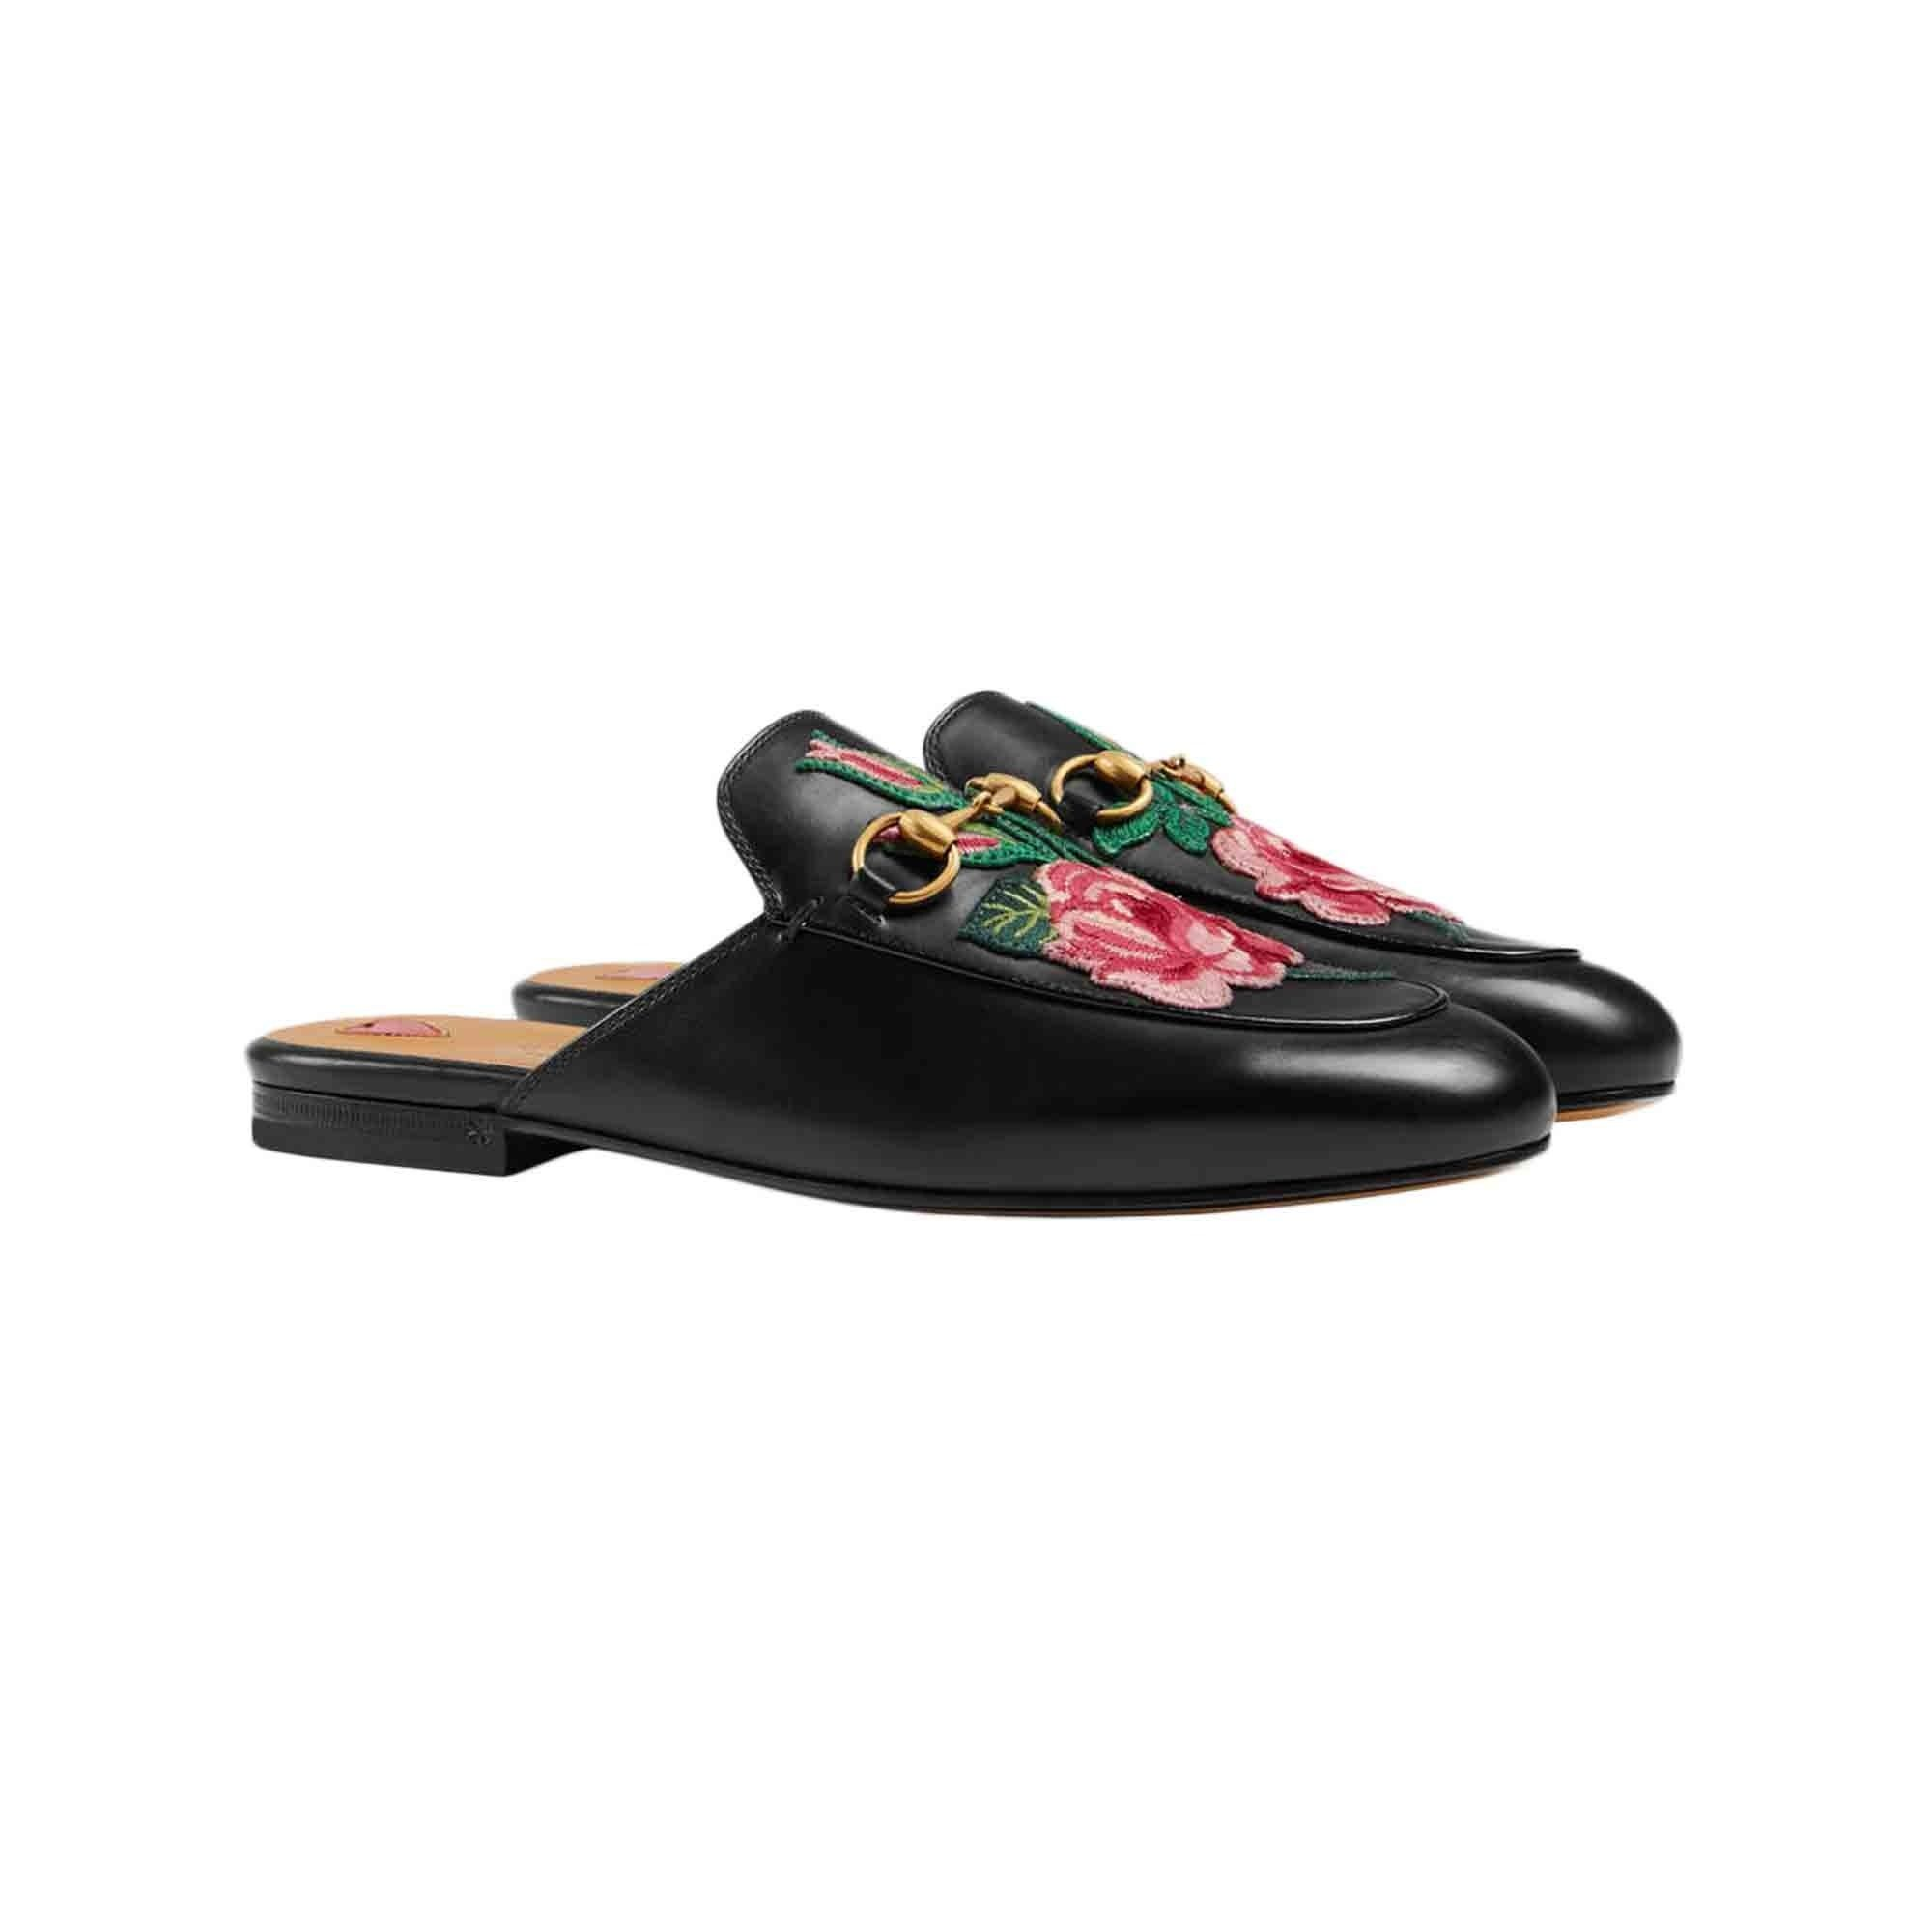 Growing up Ukrainian-American, I'm a sucker for anything with embroidery. But with these slipper loafers, I especially love how the embroidery contrasts with the sleekness of the leather and the metal hardware. Plus, you know, Gucci.